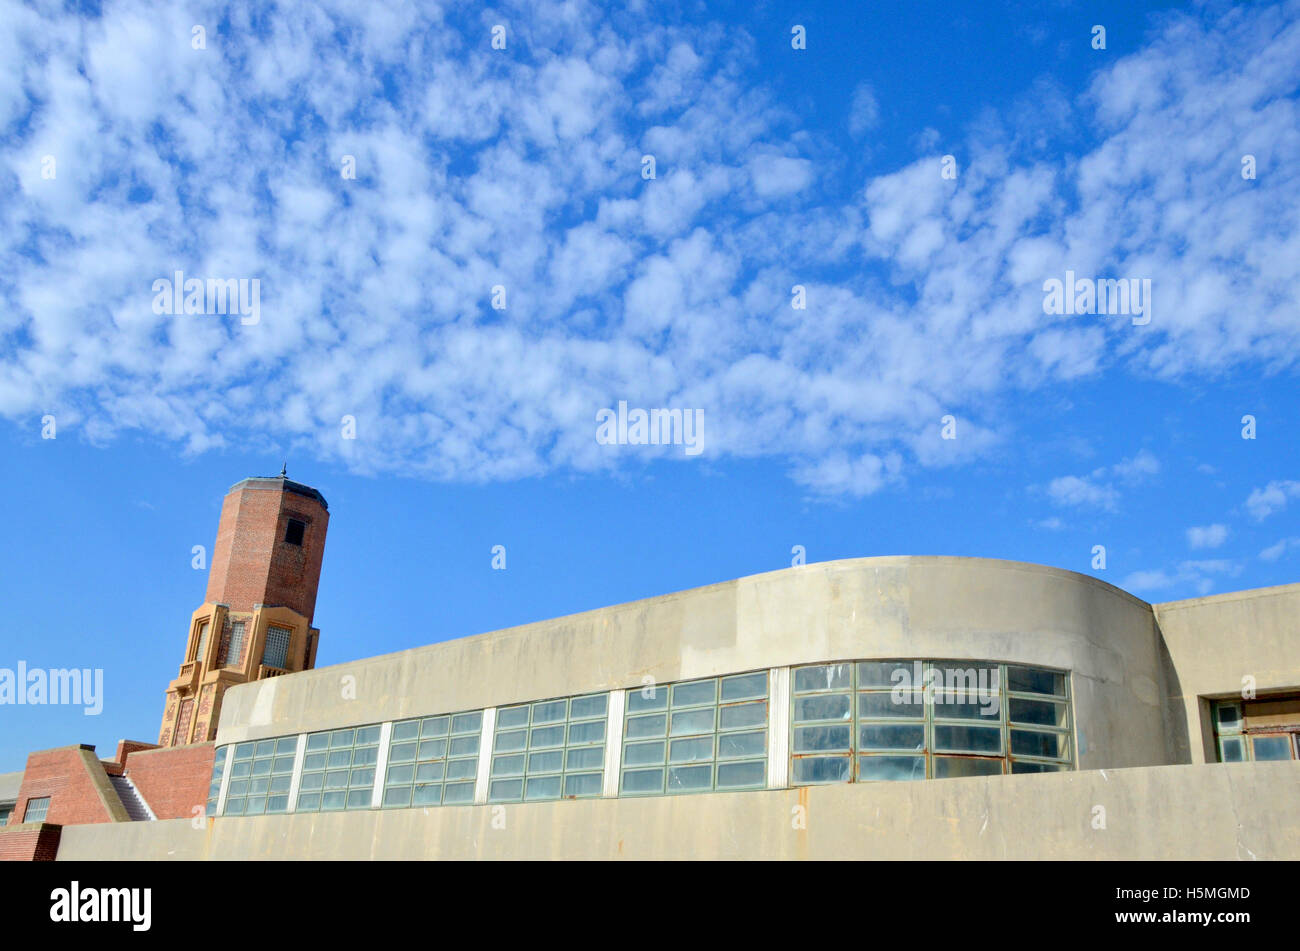 arc deco style bathhouse building at jakob riis beach brooklyn - Stock Image